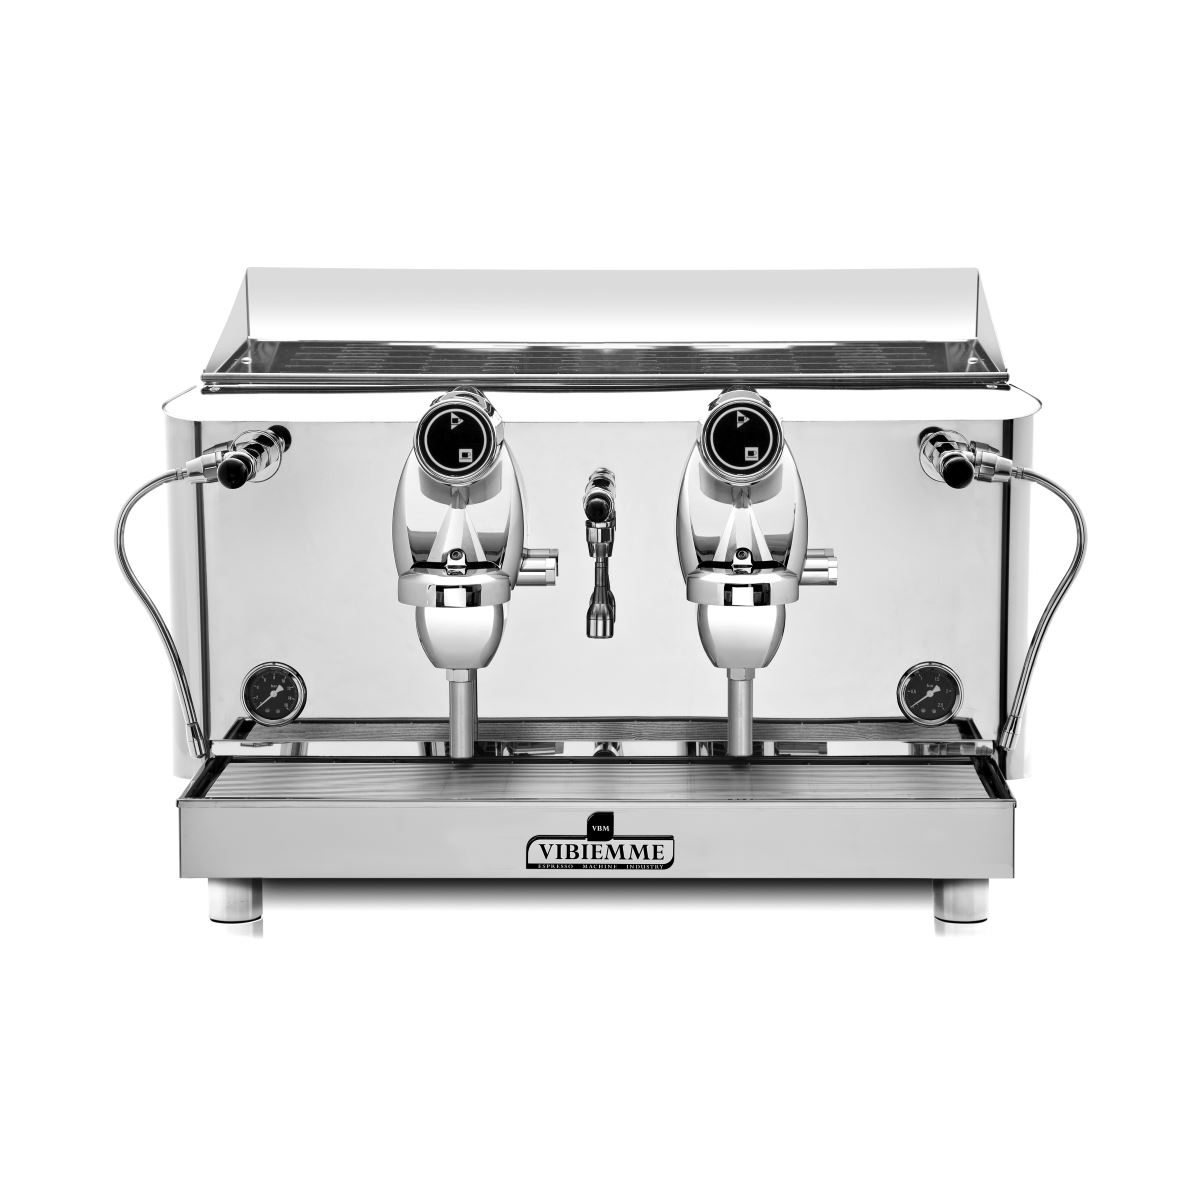 Professional coffee machine Vibiemme Lollo Semiautomatica, 2 groups